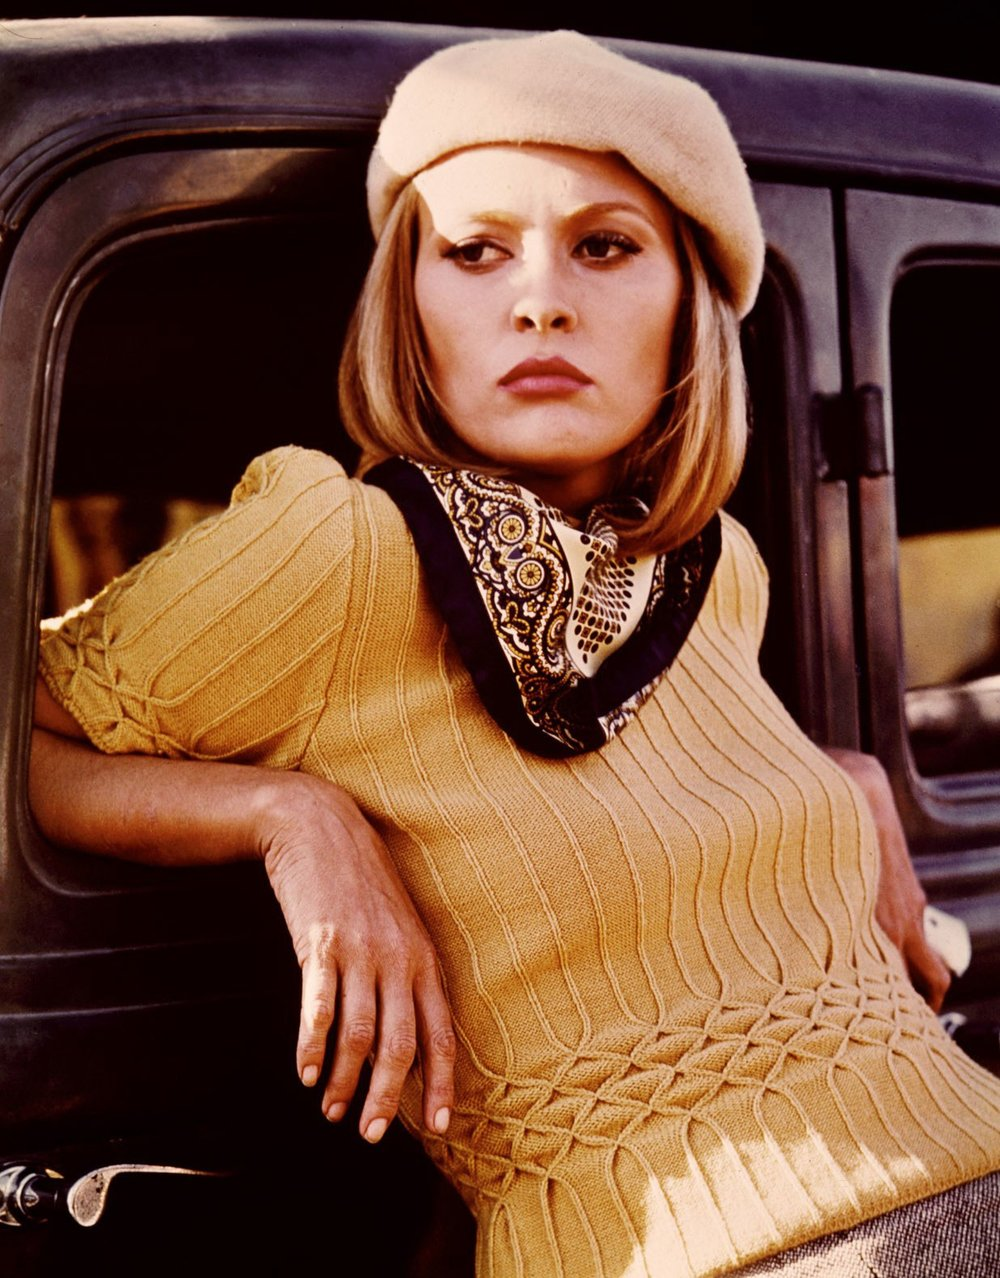 Faye Dunaway in Bonnie and Clyde. That sweater is everything paired with the scarf and beret or tam.